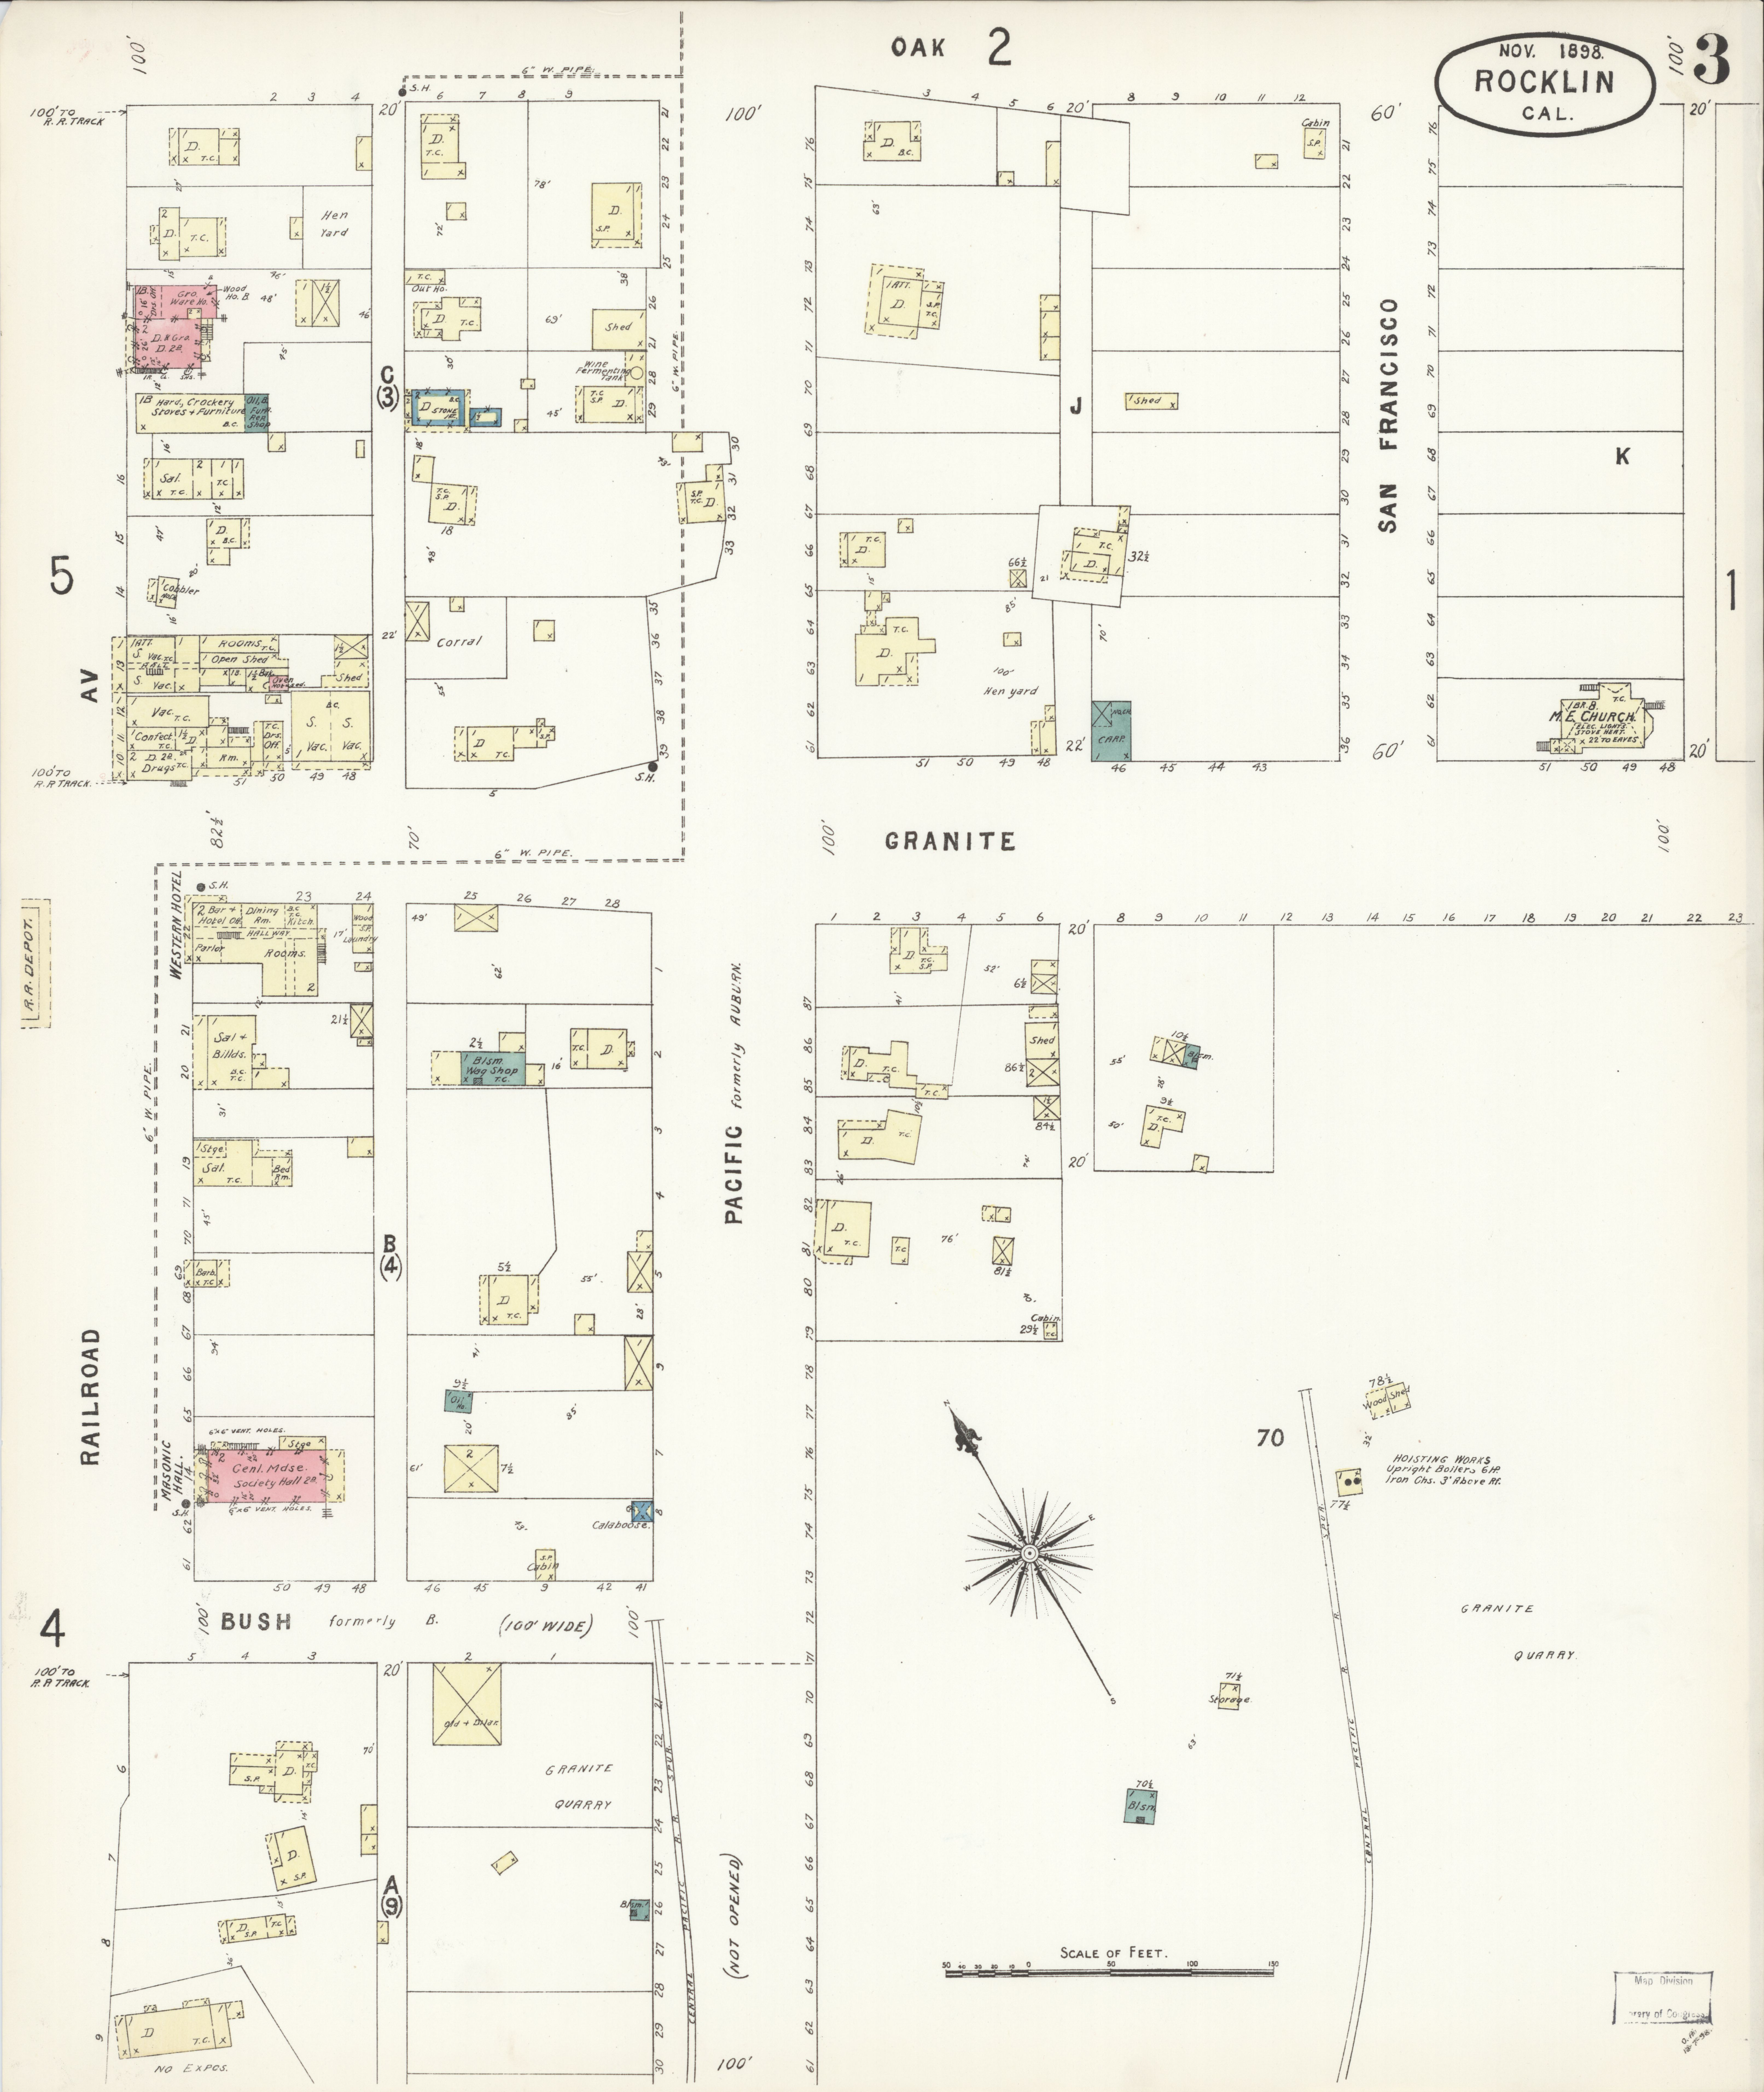 Placer County Fire Map.File Sanborn Fire Insurance Map From Rocklin Placer County